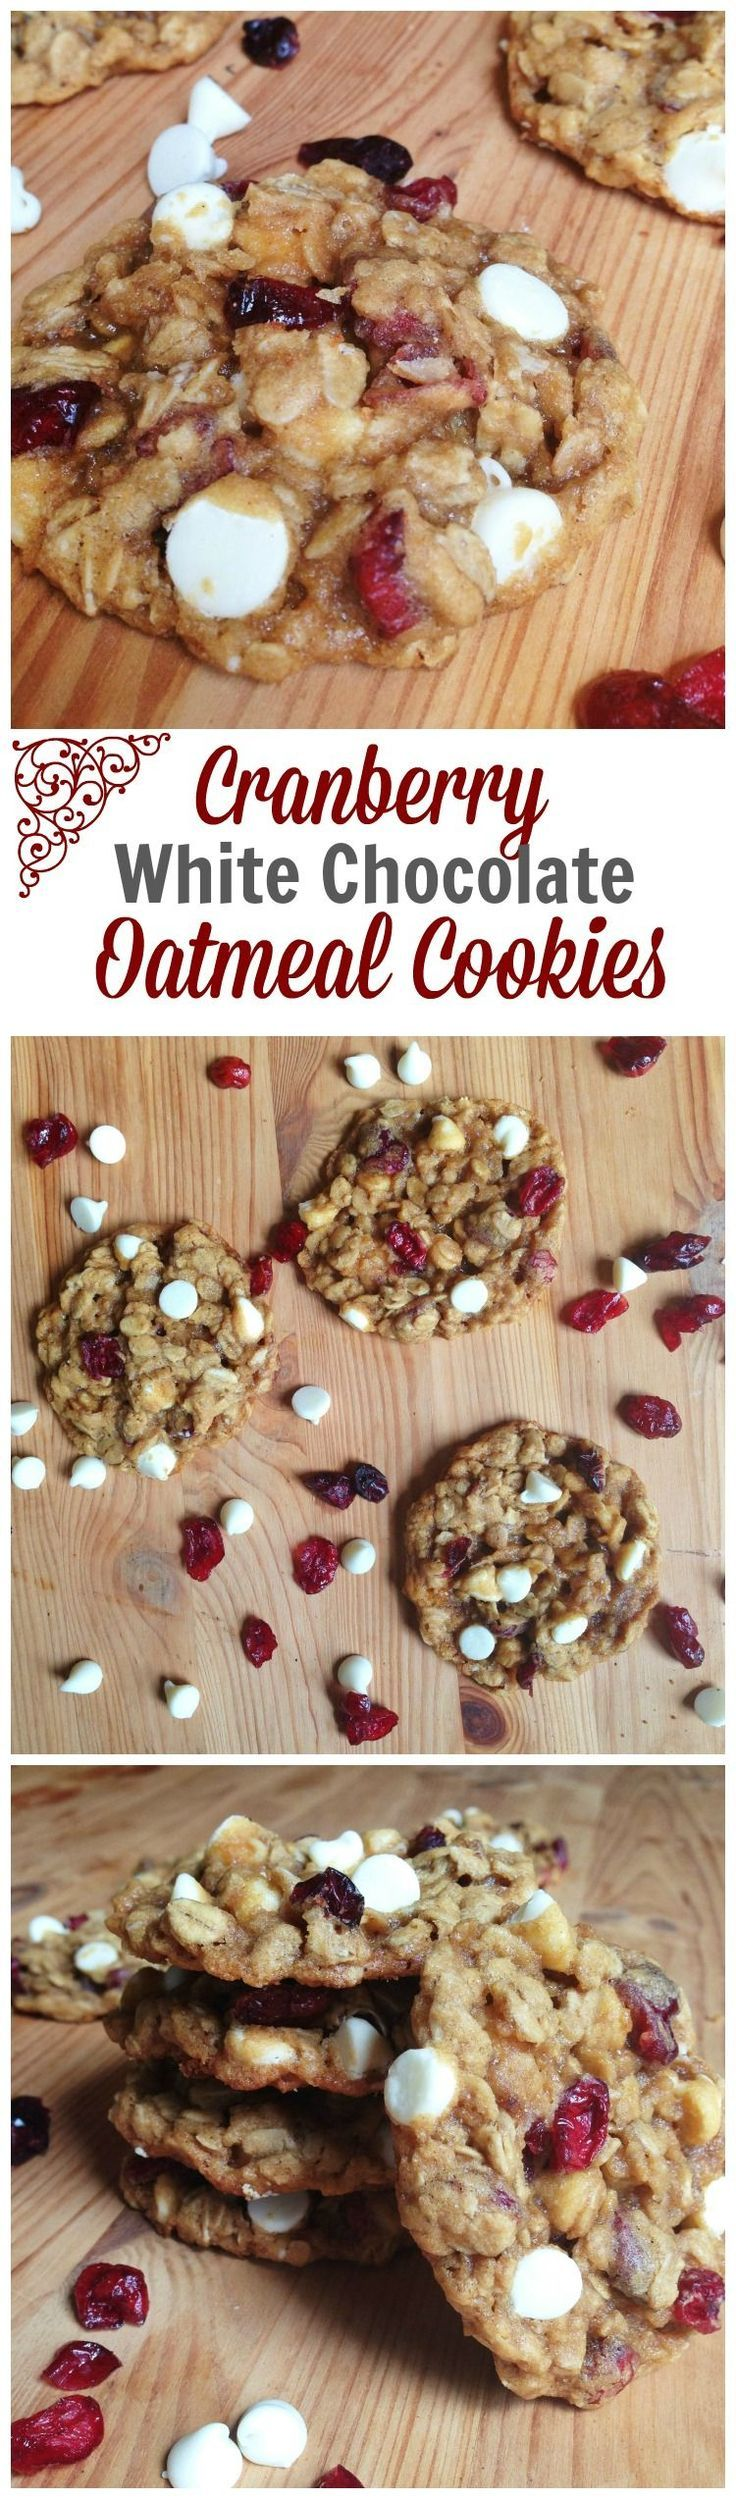 Cranberry White Chocolate Oatmeal Cookies. Cranberries and white chocolate chips | oatmeal cranberry cookies | oatmeal cookie recipe #cranberry #oatmealcookies #cookierecipe #whitechocolate #whitechocolatecranberry